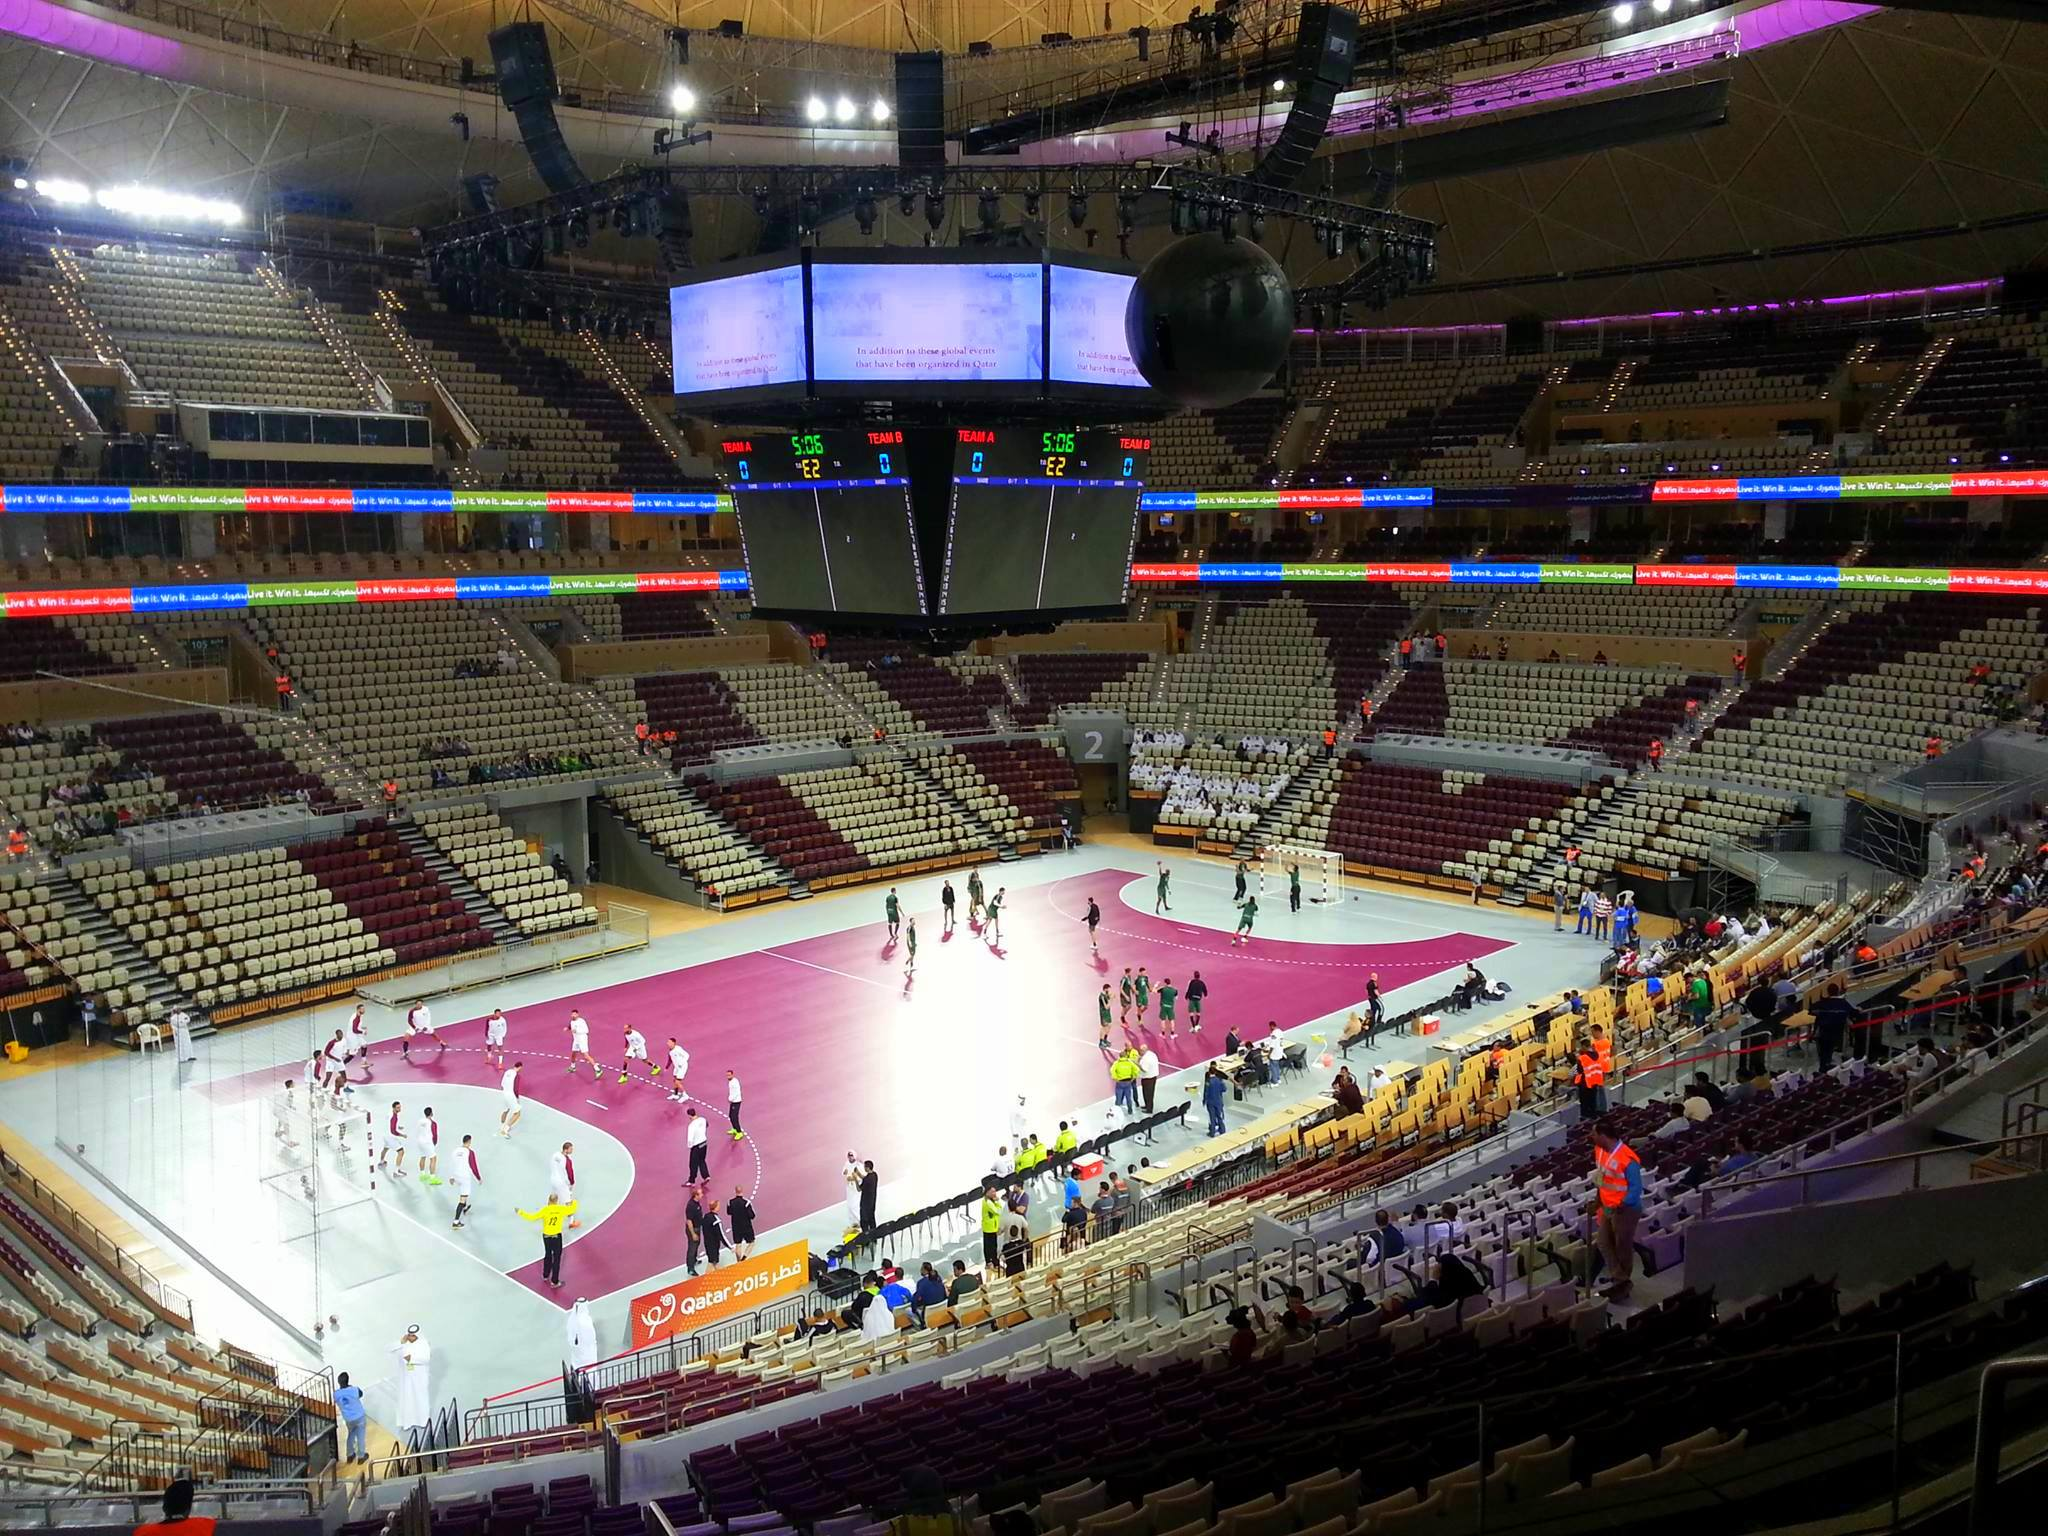 File:Lusail sports Arena, interior1.jpg - Wikimedia Commons